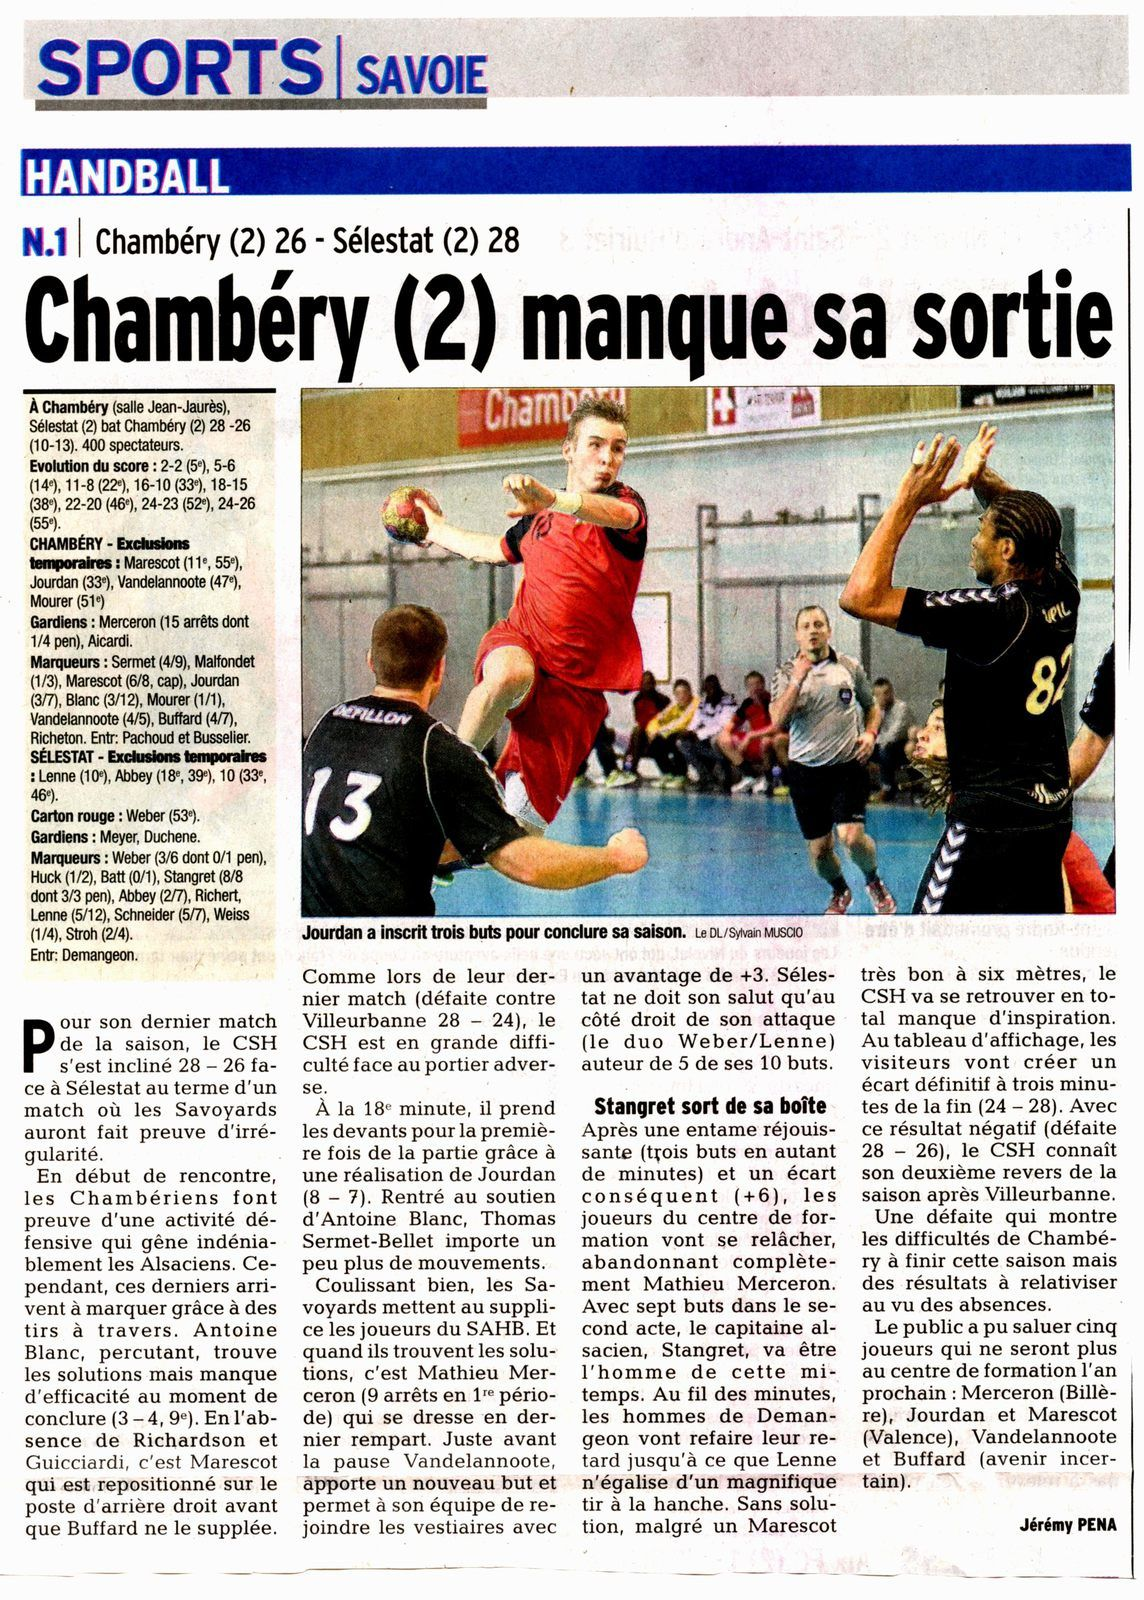 N1 Article sur le match CHAMBERY2 - SELESTAT2